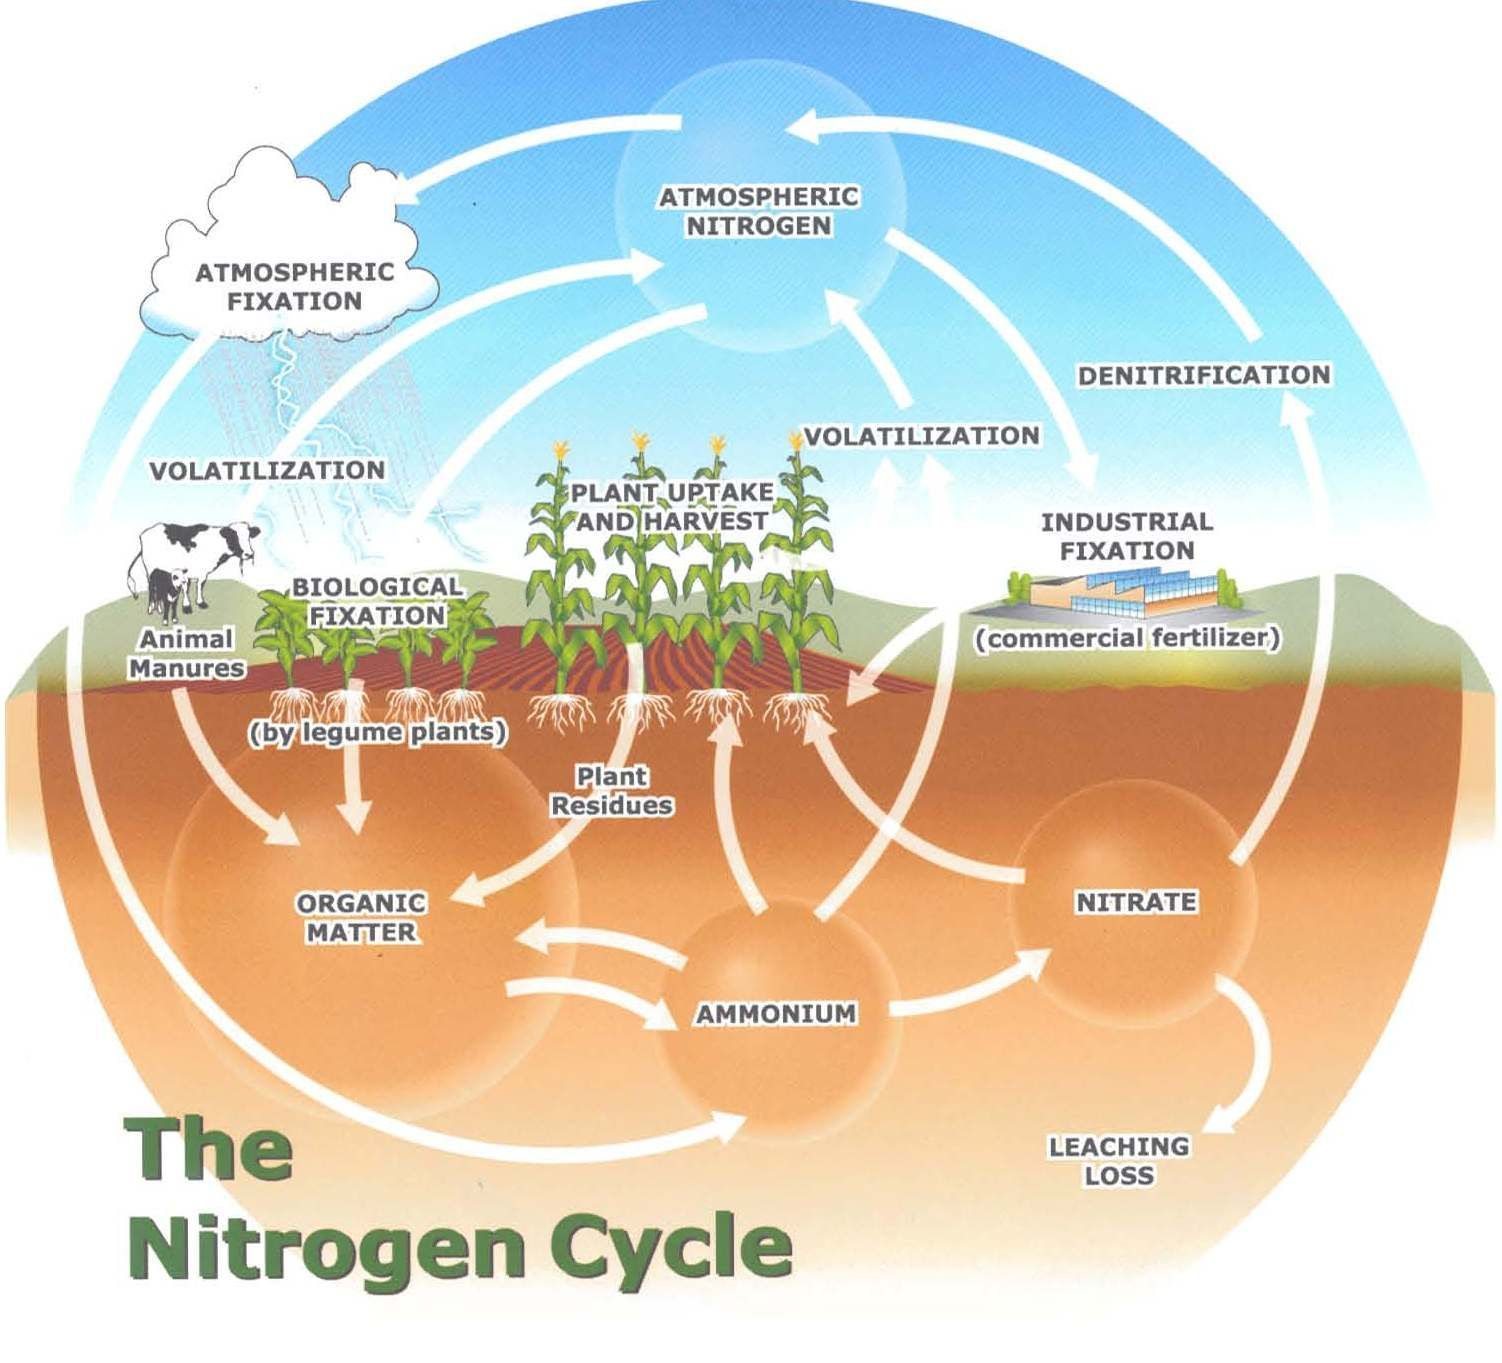 hight resolution of nitrogen cycle sources of atmospheric nitrogen decay of animal plant matter sinks for atmospheric nitrogen bacteria in soil plankton